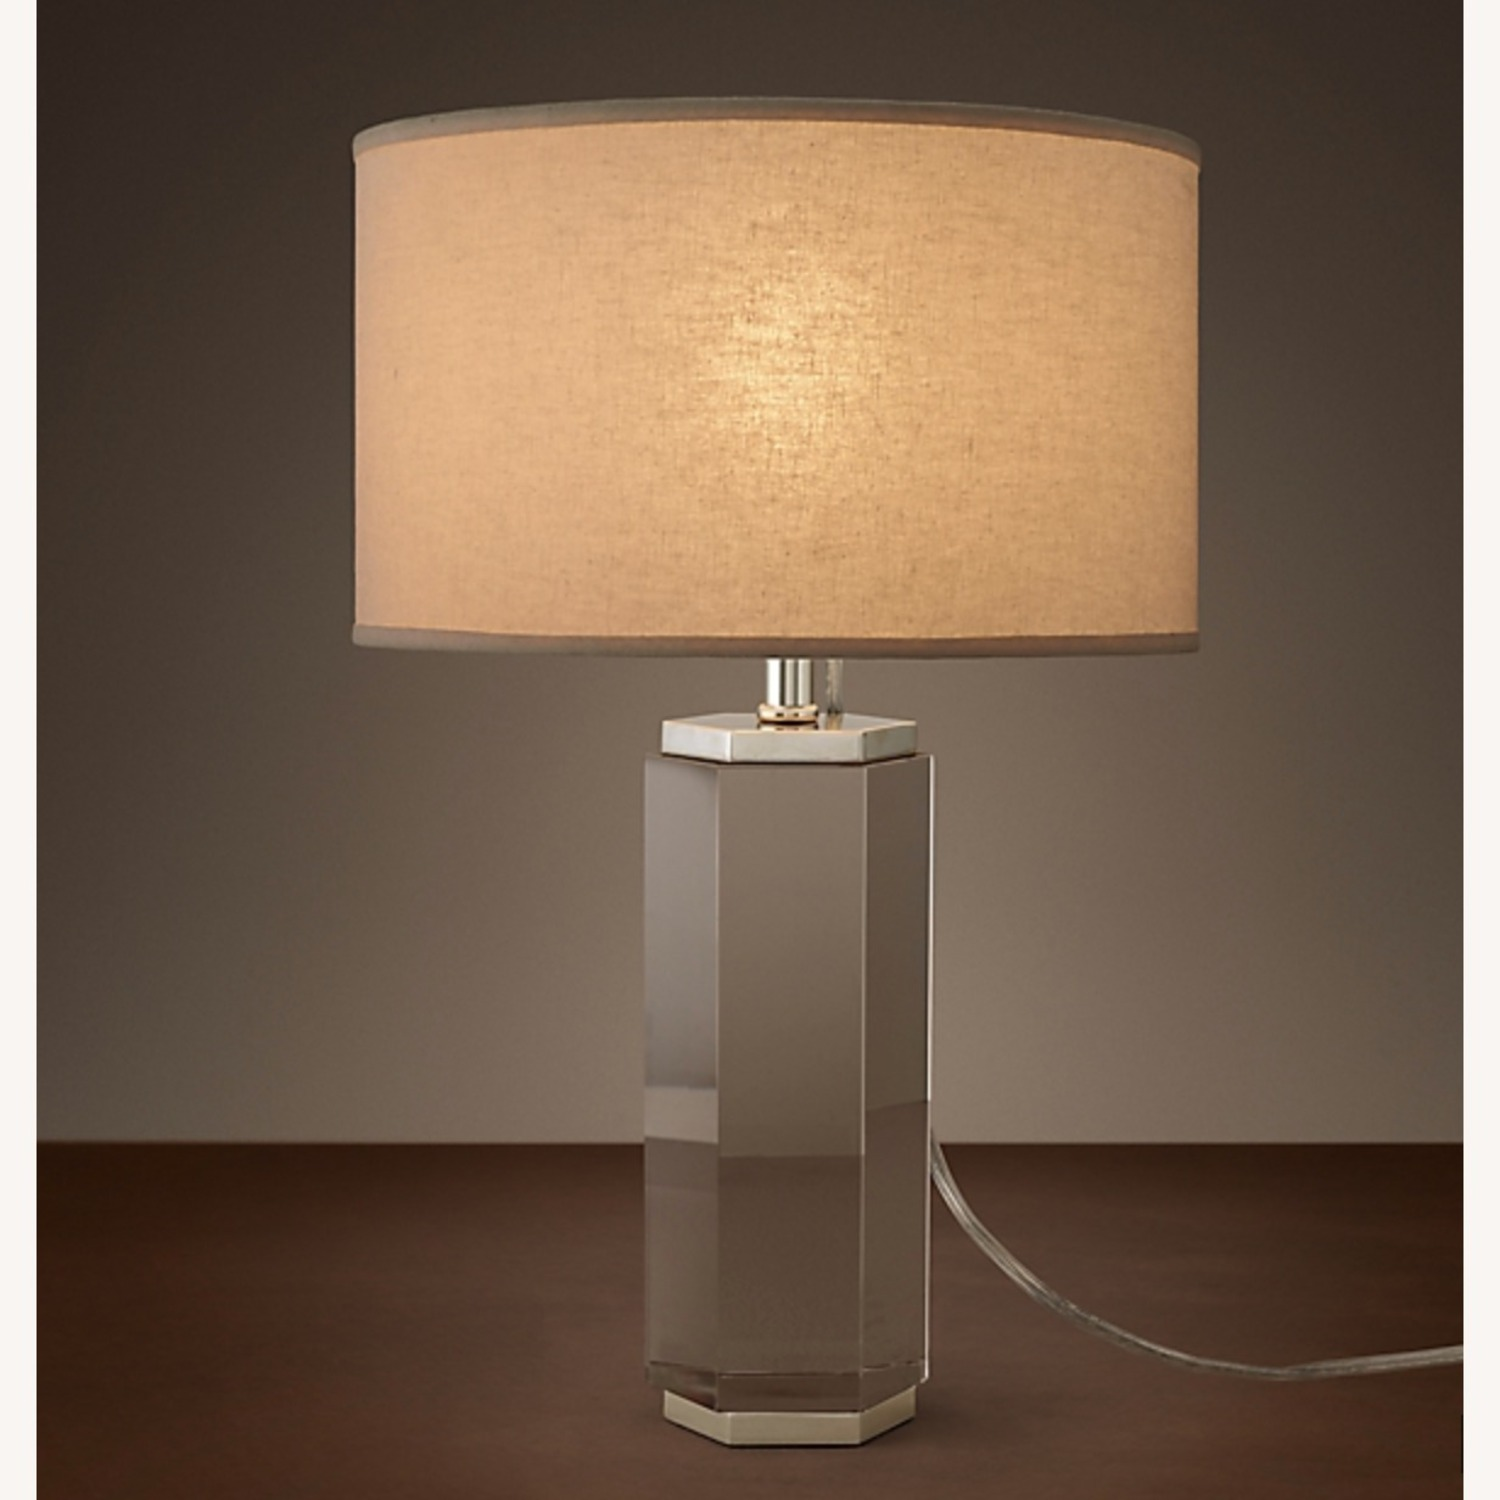 Restoration Hardware Crystal Accent Lamp - image-4